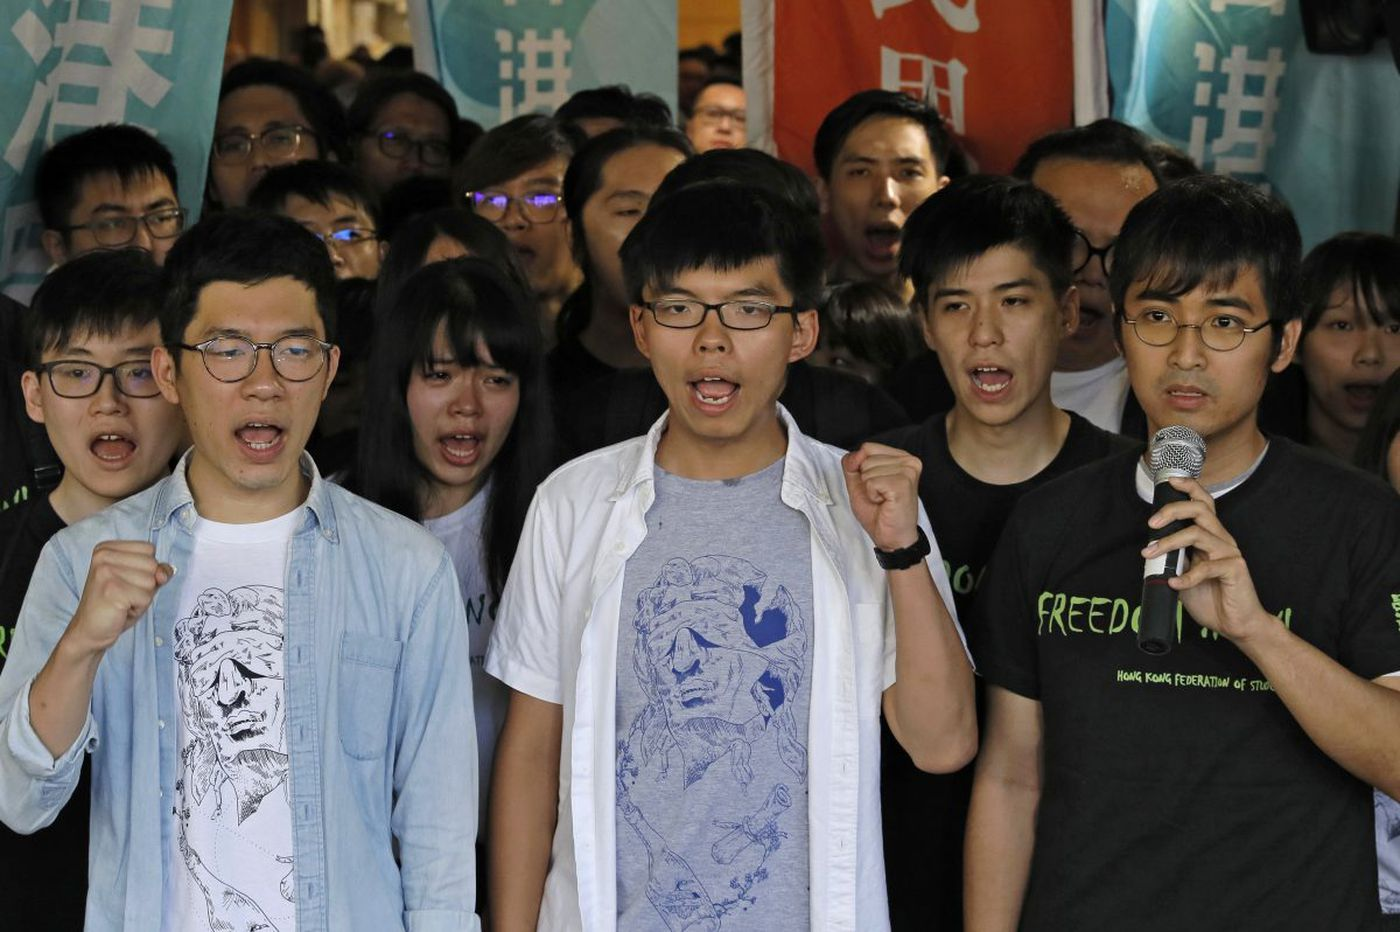 Why the fate of three Hong Kong activists matters to the future of global democracy | Trudy Rubin